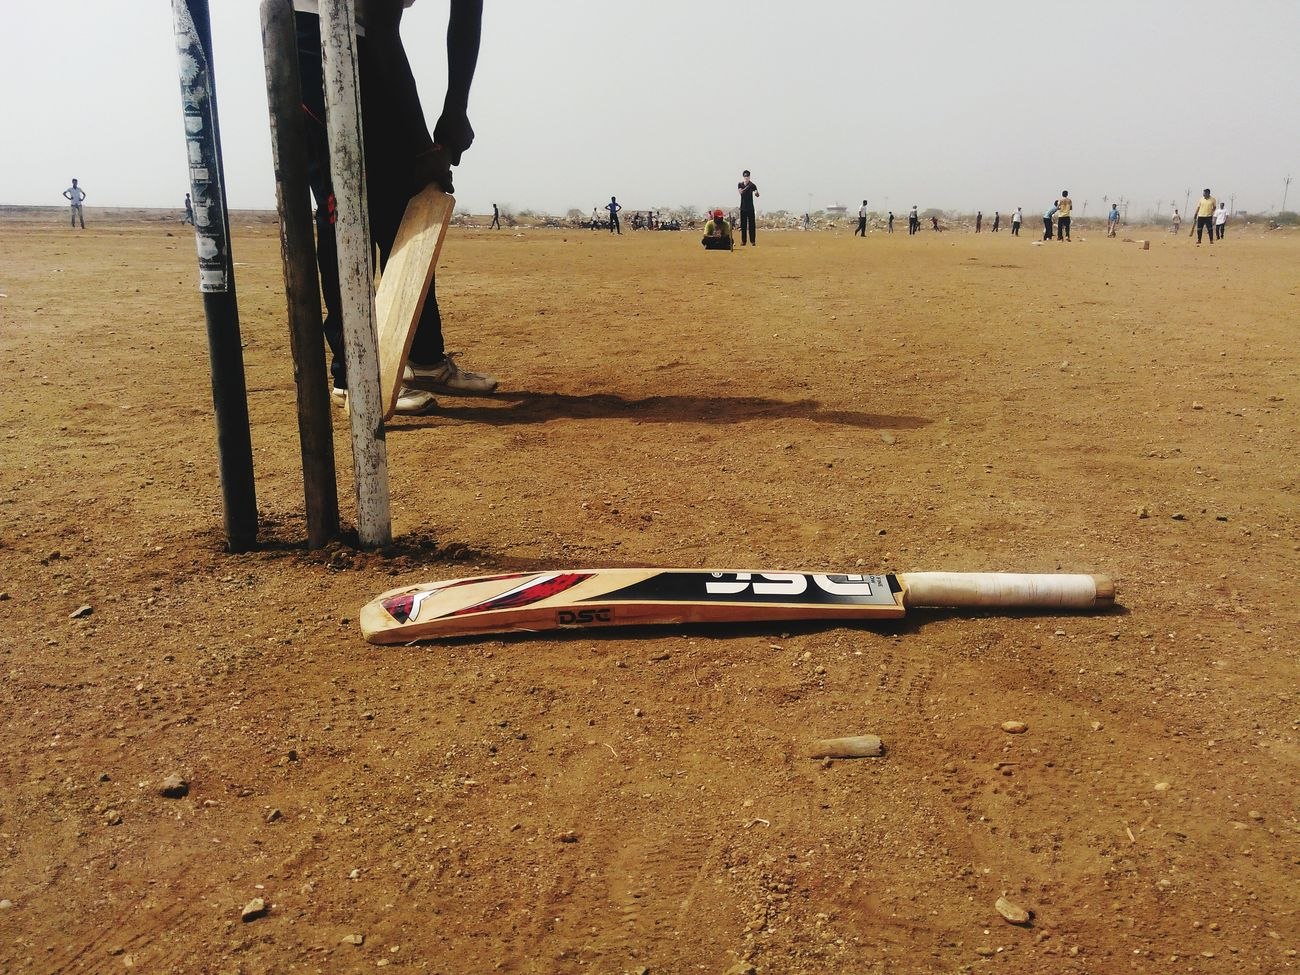 Watching Cricket mach bhavnagar town